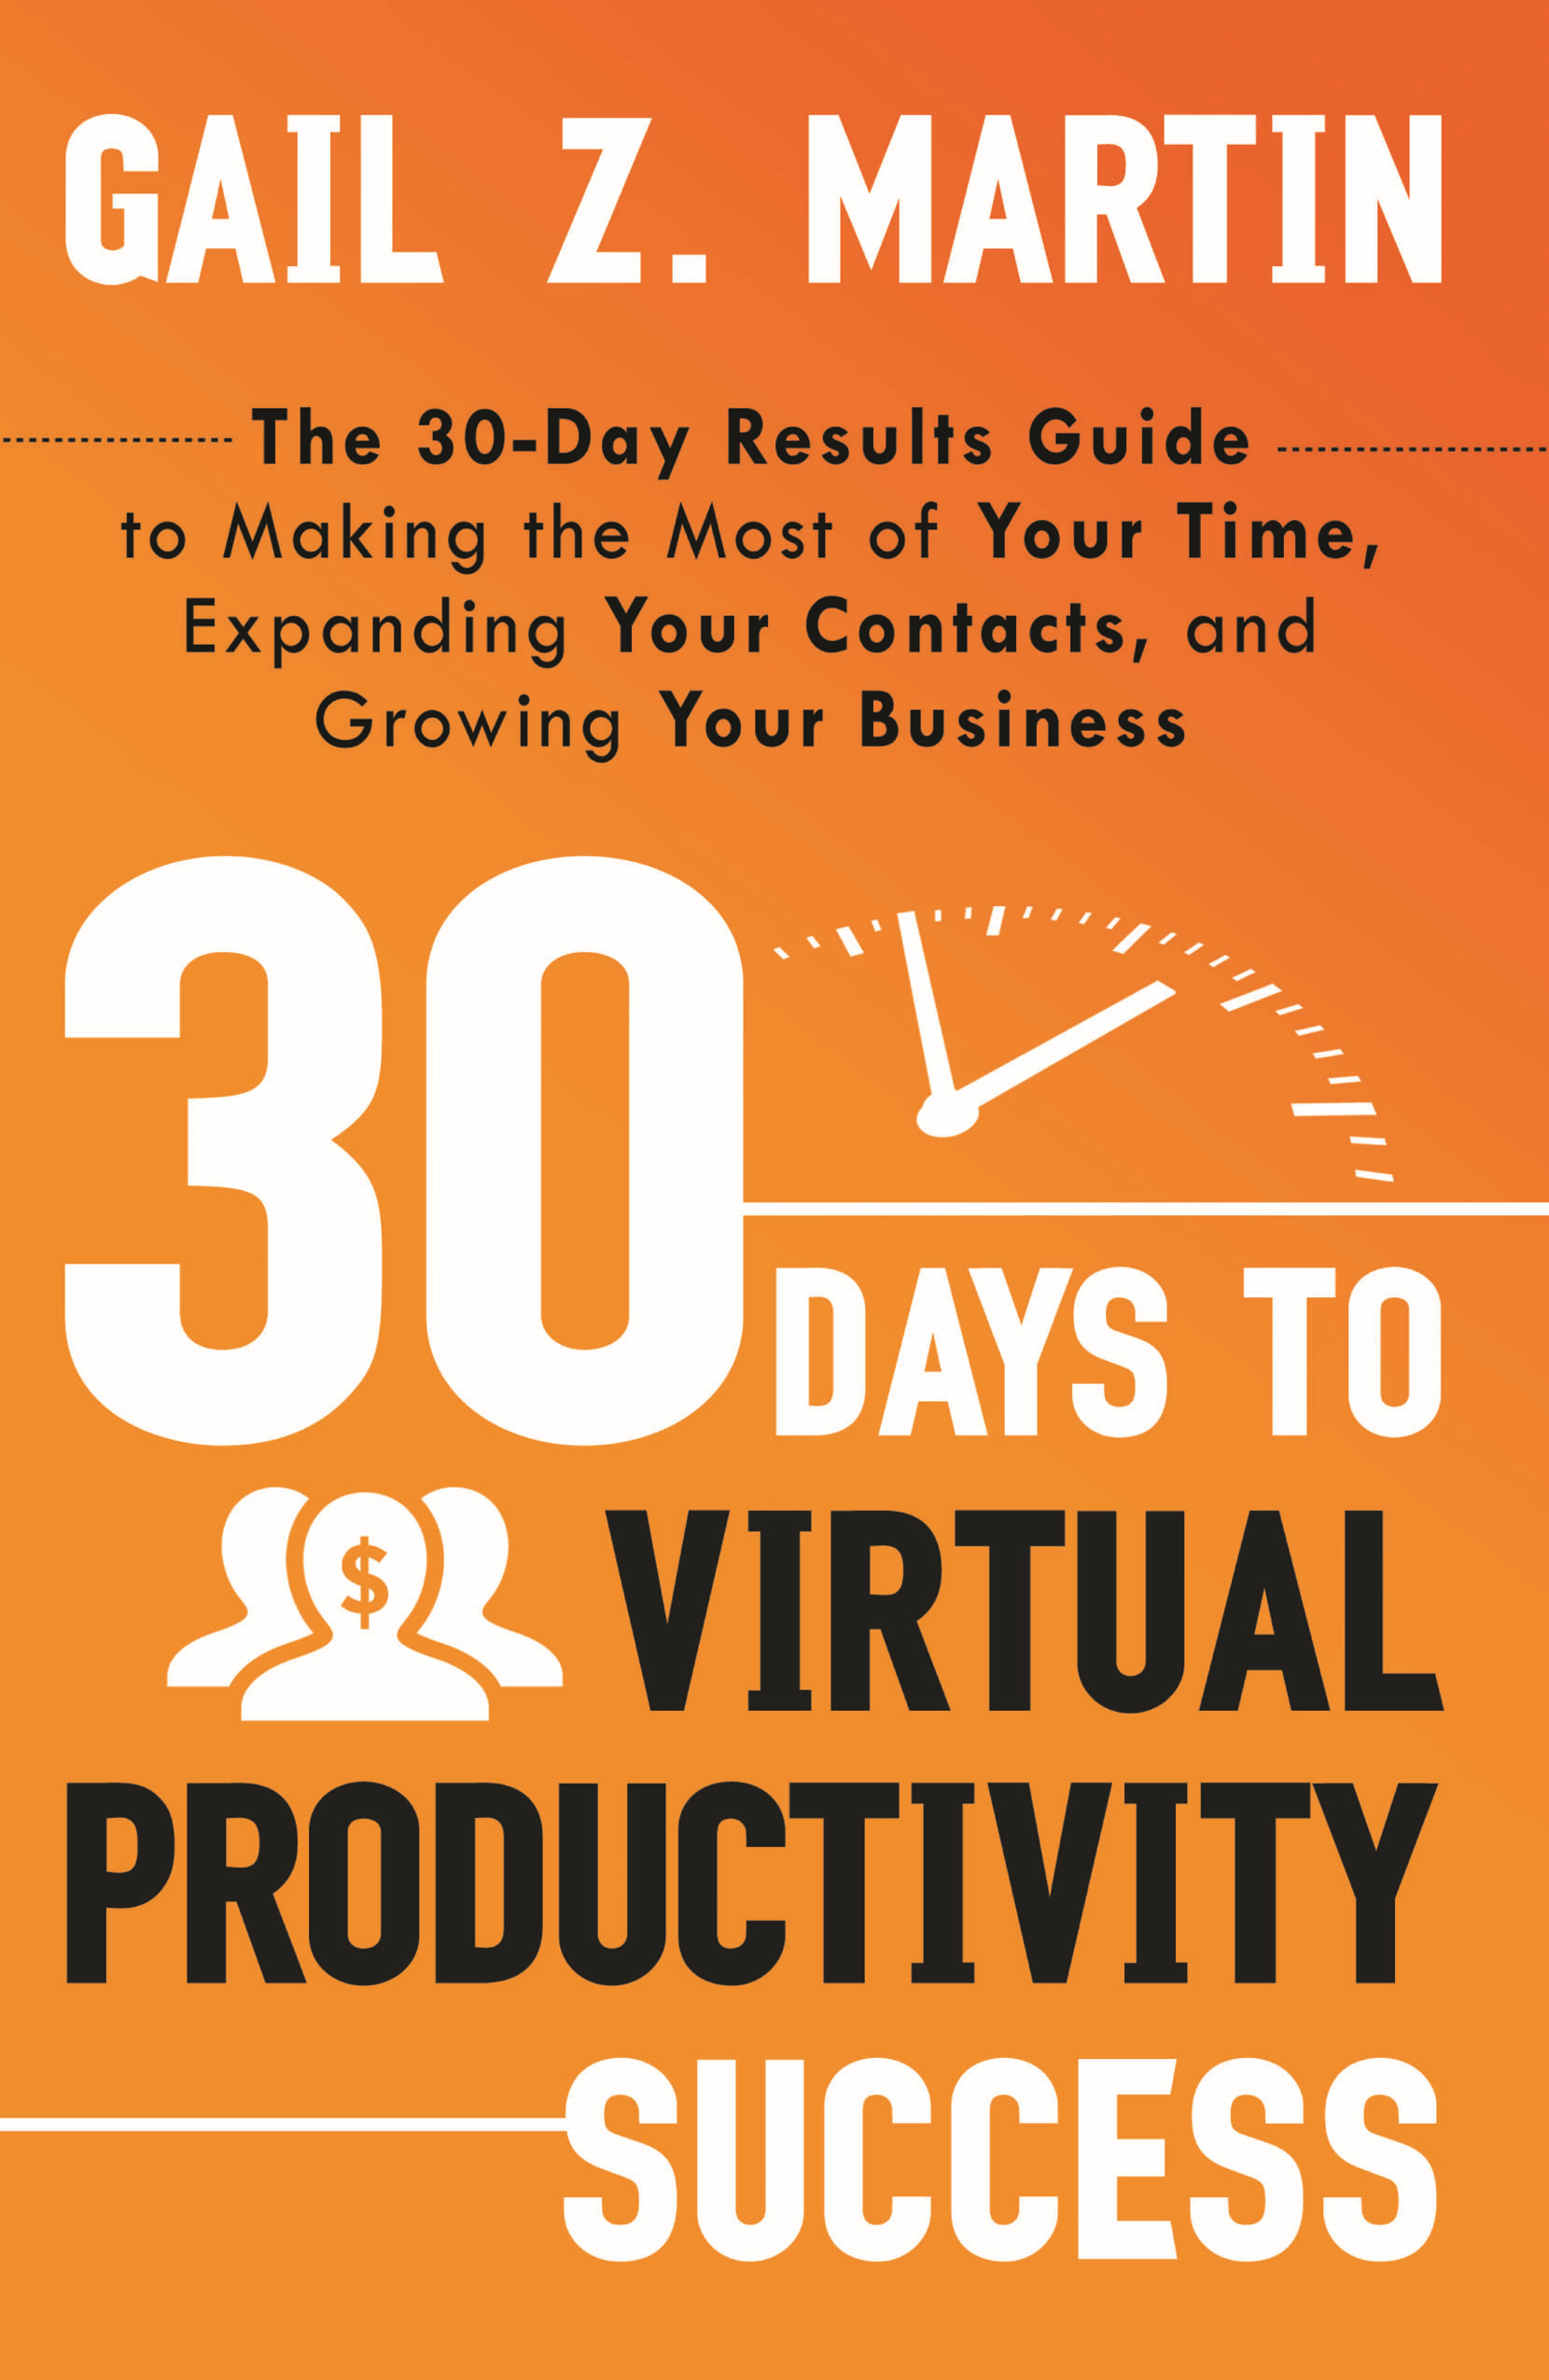 30 Days to Virtual Productivity Success By: Gail Z. Martin